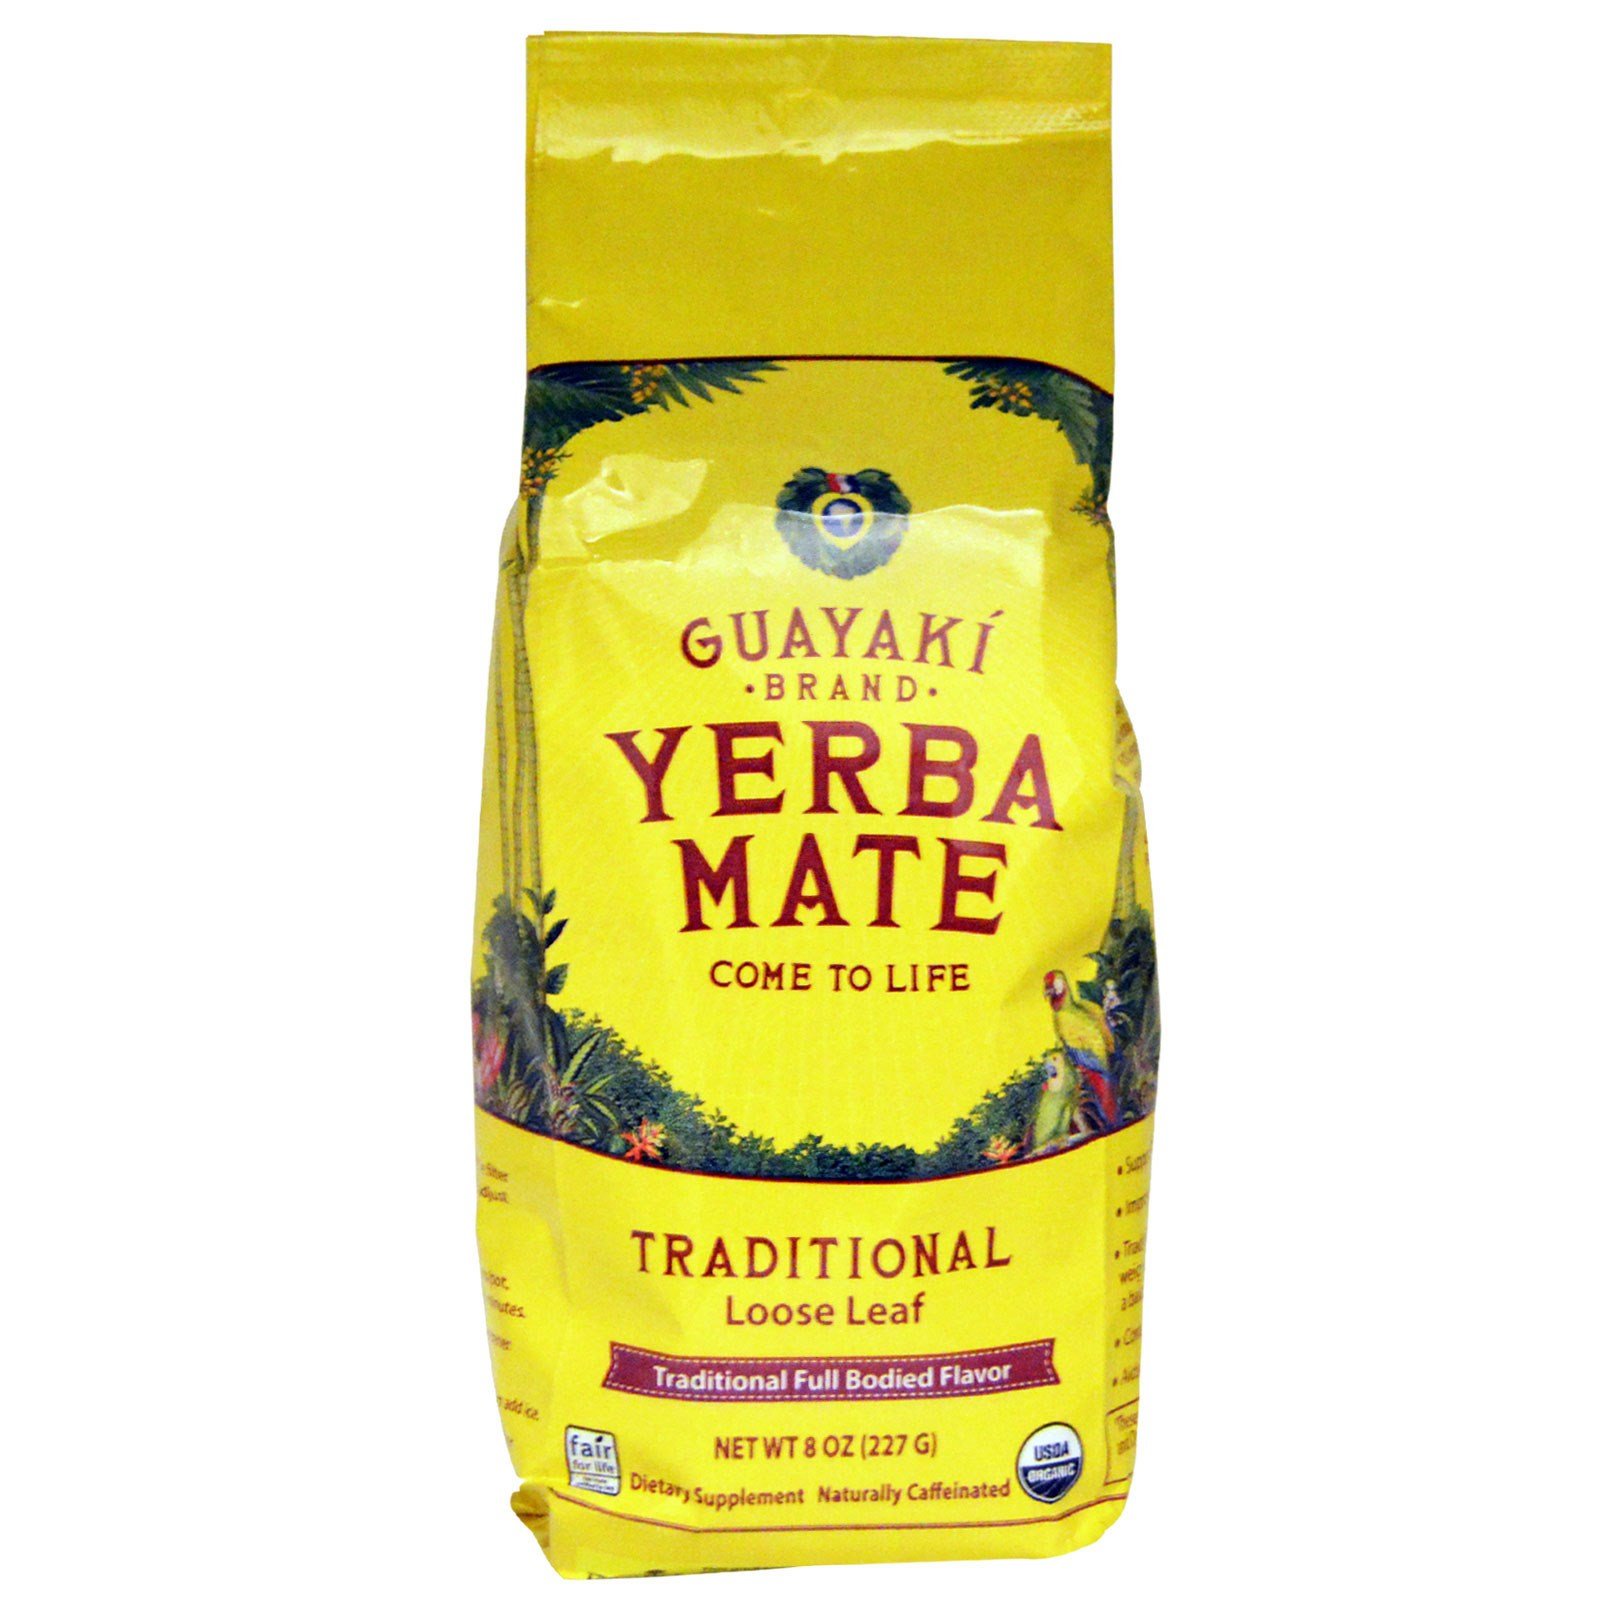 yerba mate What is yerba mate there are only a handful of plants in the world that produce caffeine, and yerba mate is one of them along with tea, coffee, cacao, kola (or cola) and guarana, the yerba mate herb is used to produce a caffeinated beverage.